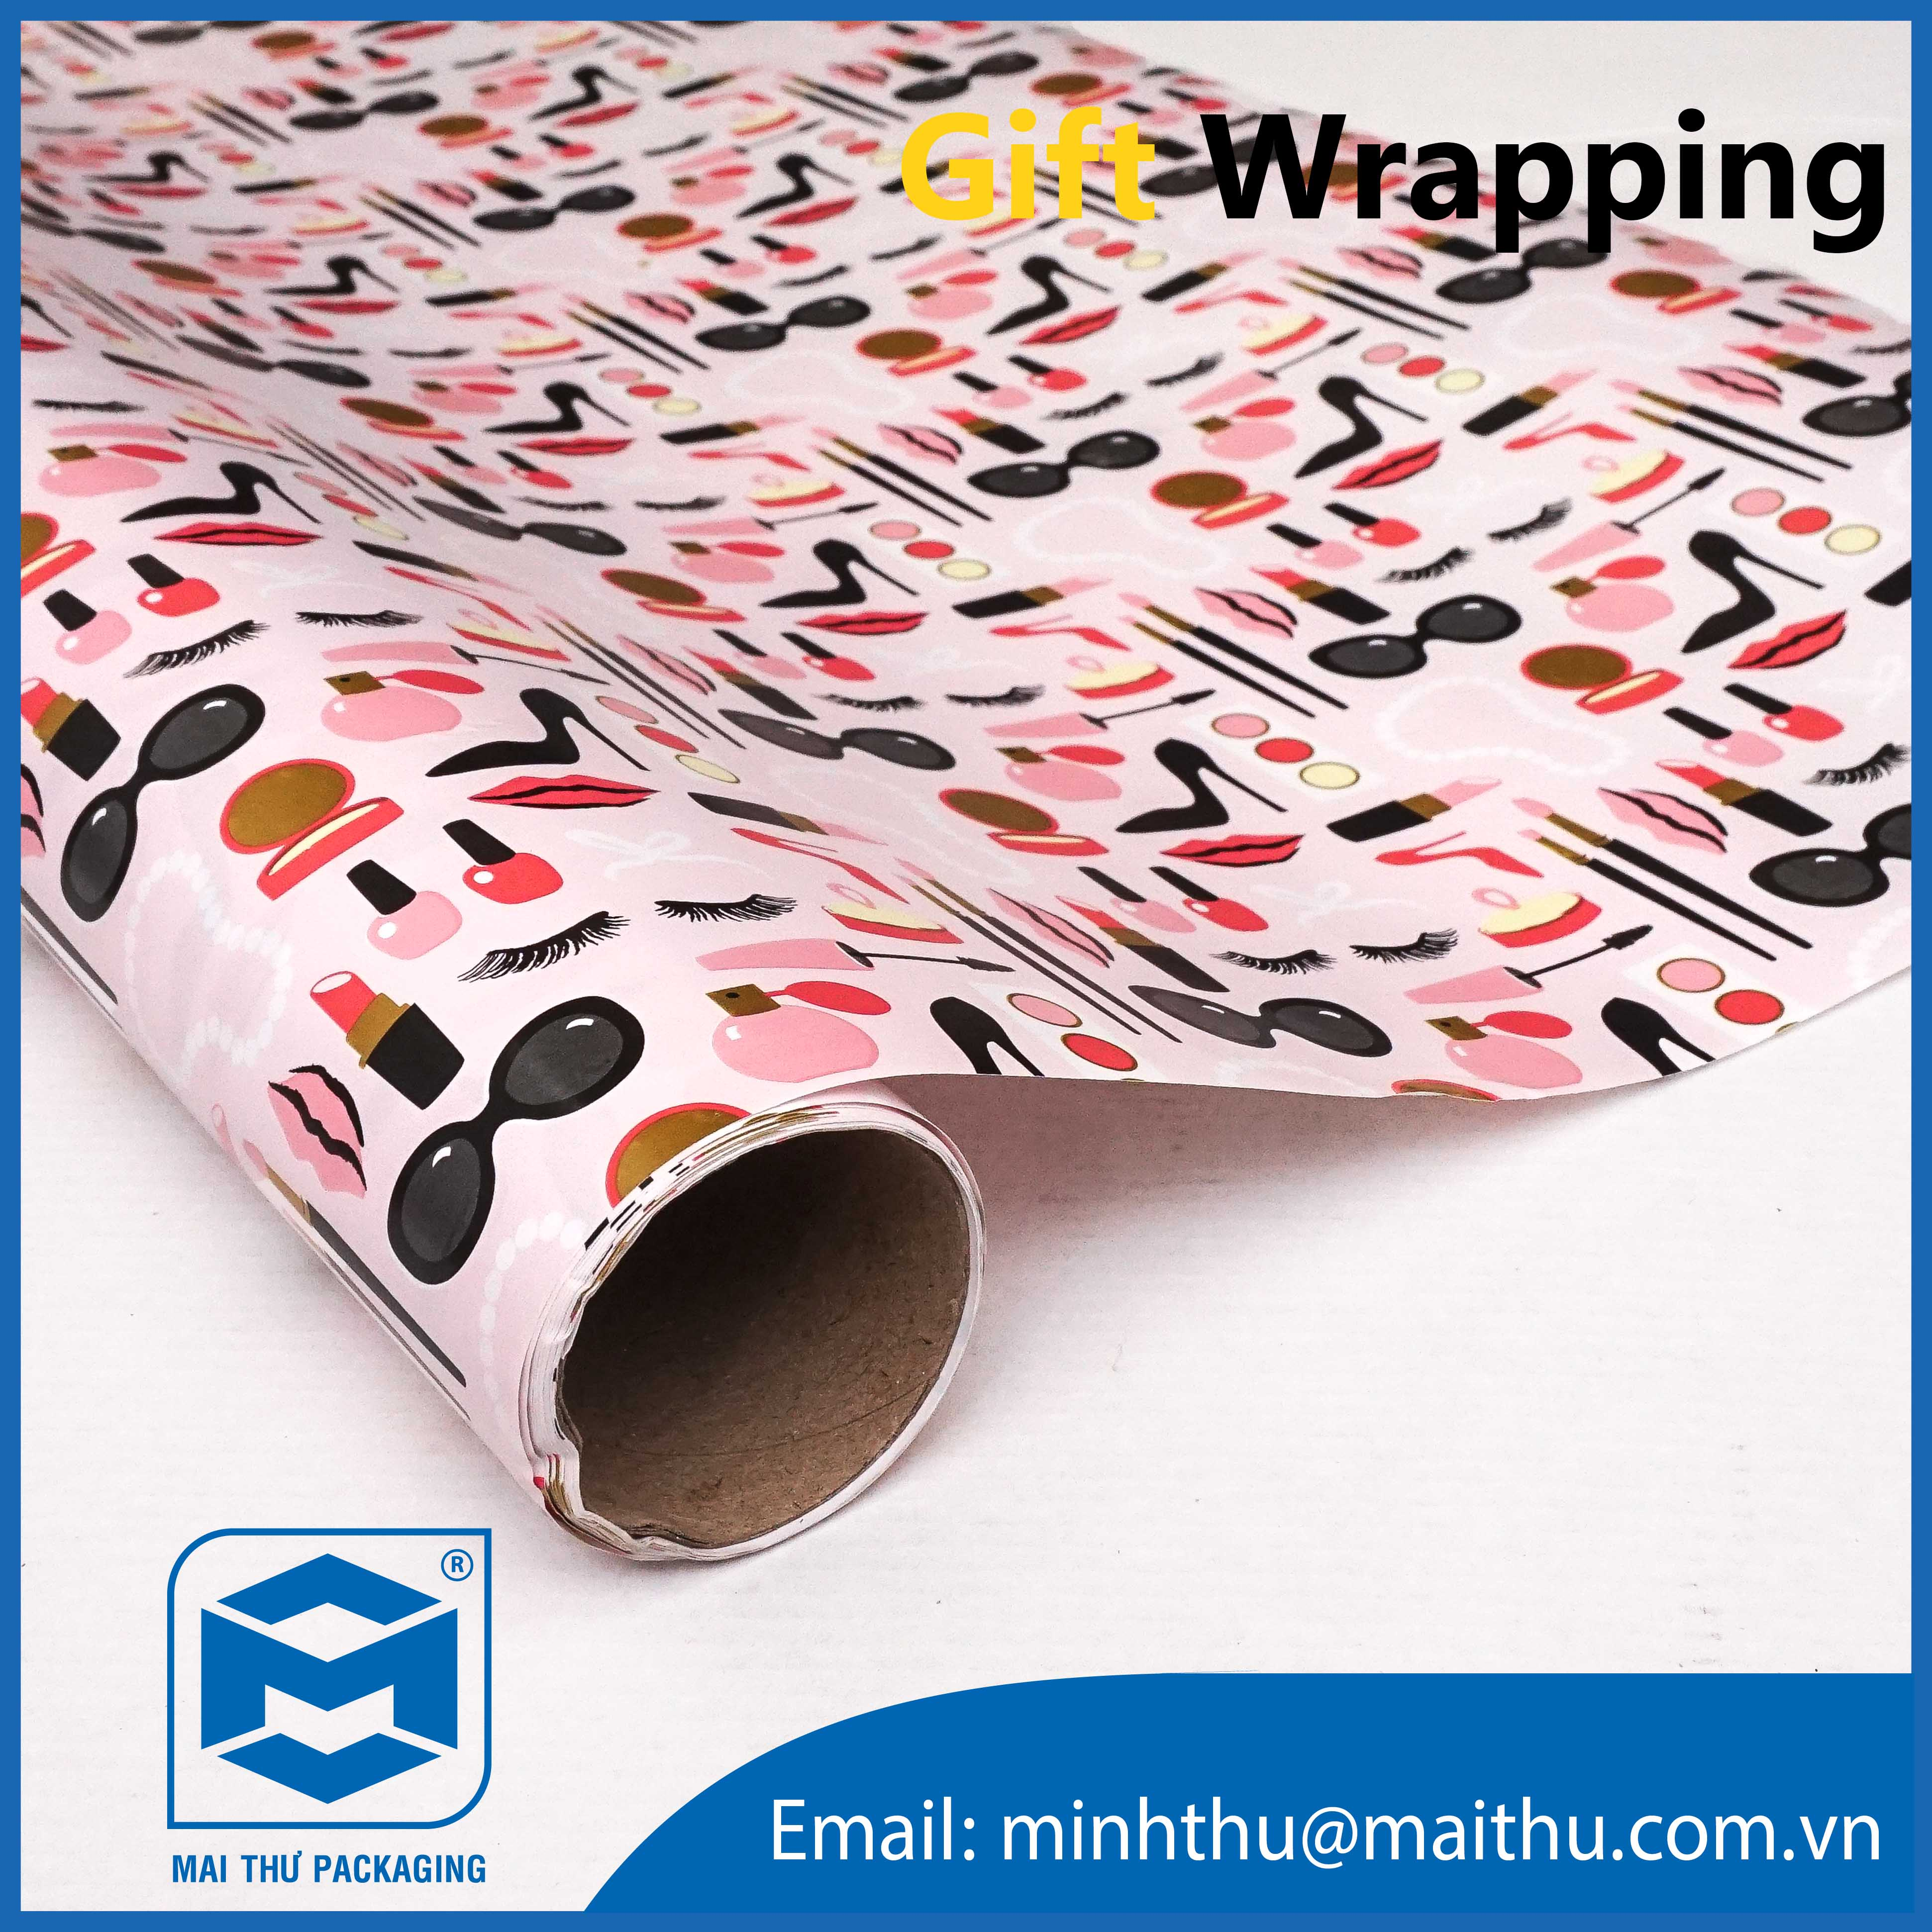 Gift Wrapping - 3